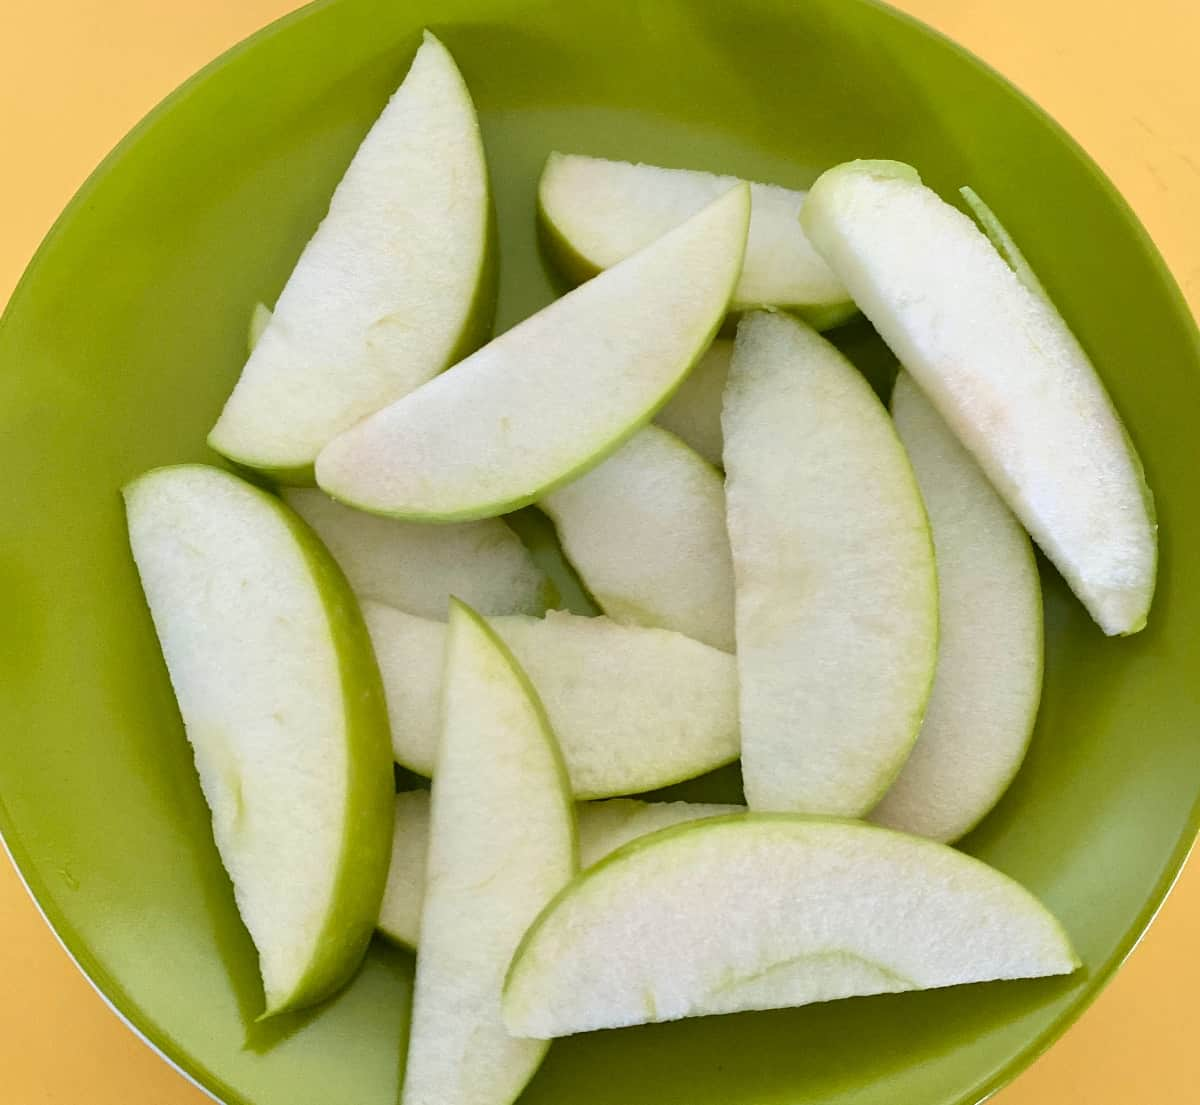 Granny Smith apple slices on green plate.